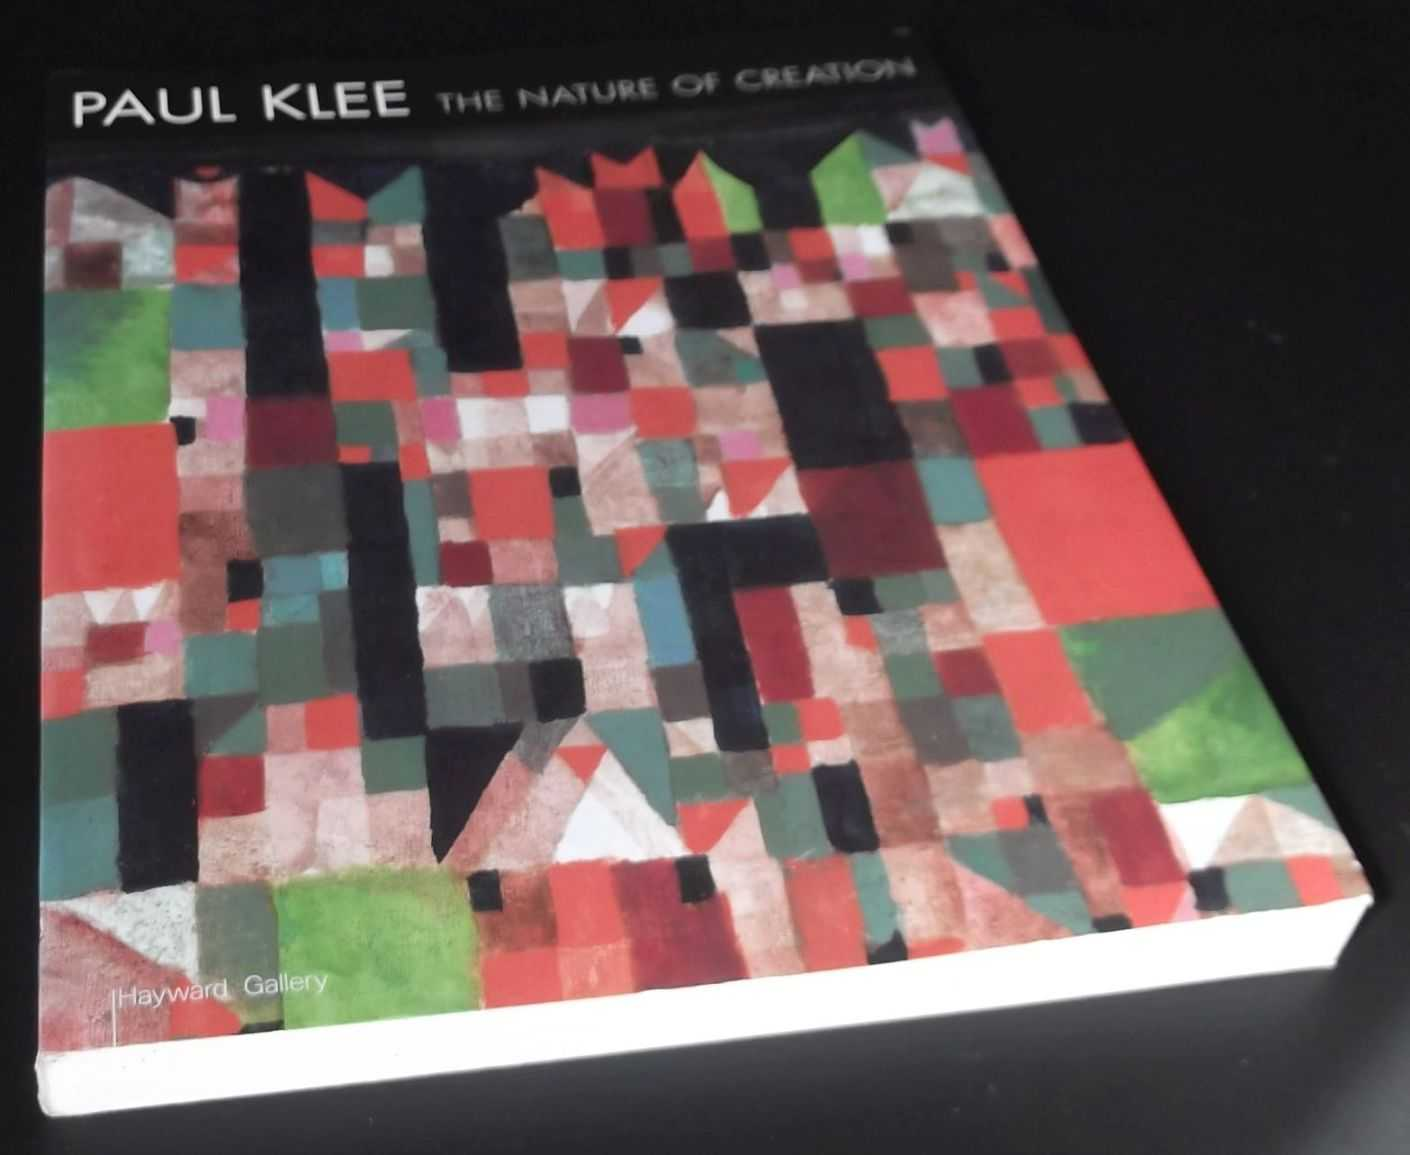 ROBERT KUDIELKA , BRIDGET RILEY - Paul Klee: The Nature of Creation: Works 1914-1940